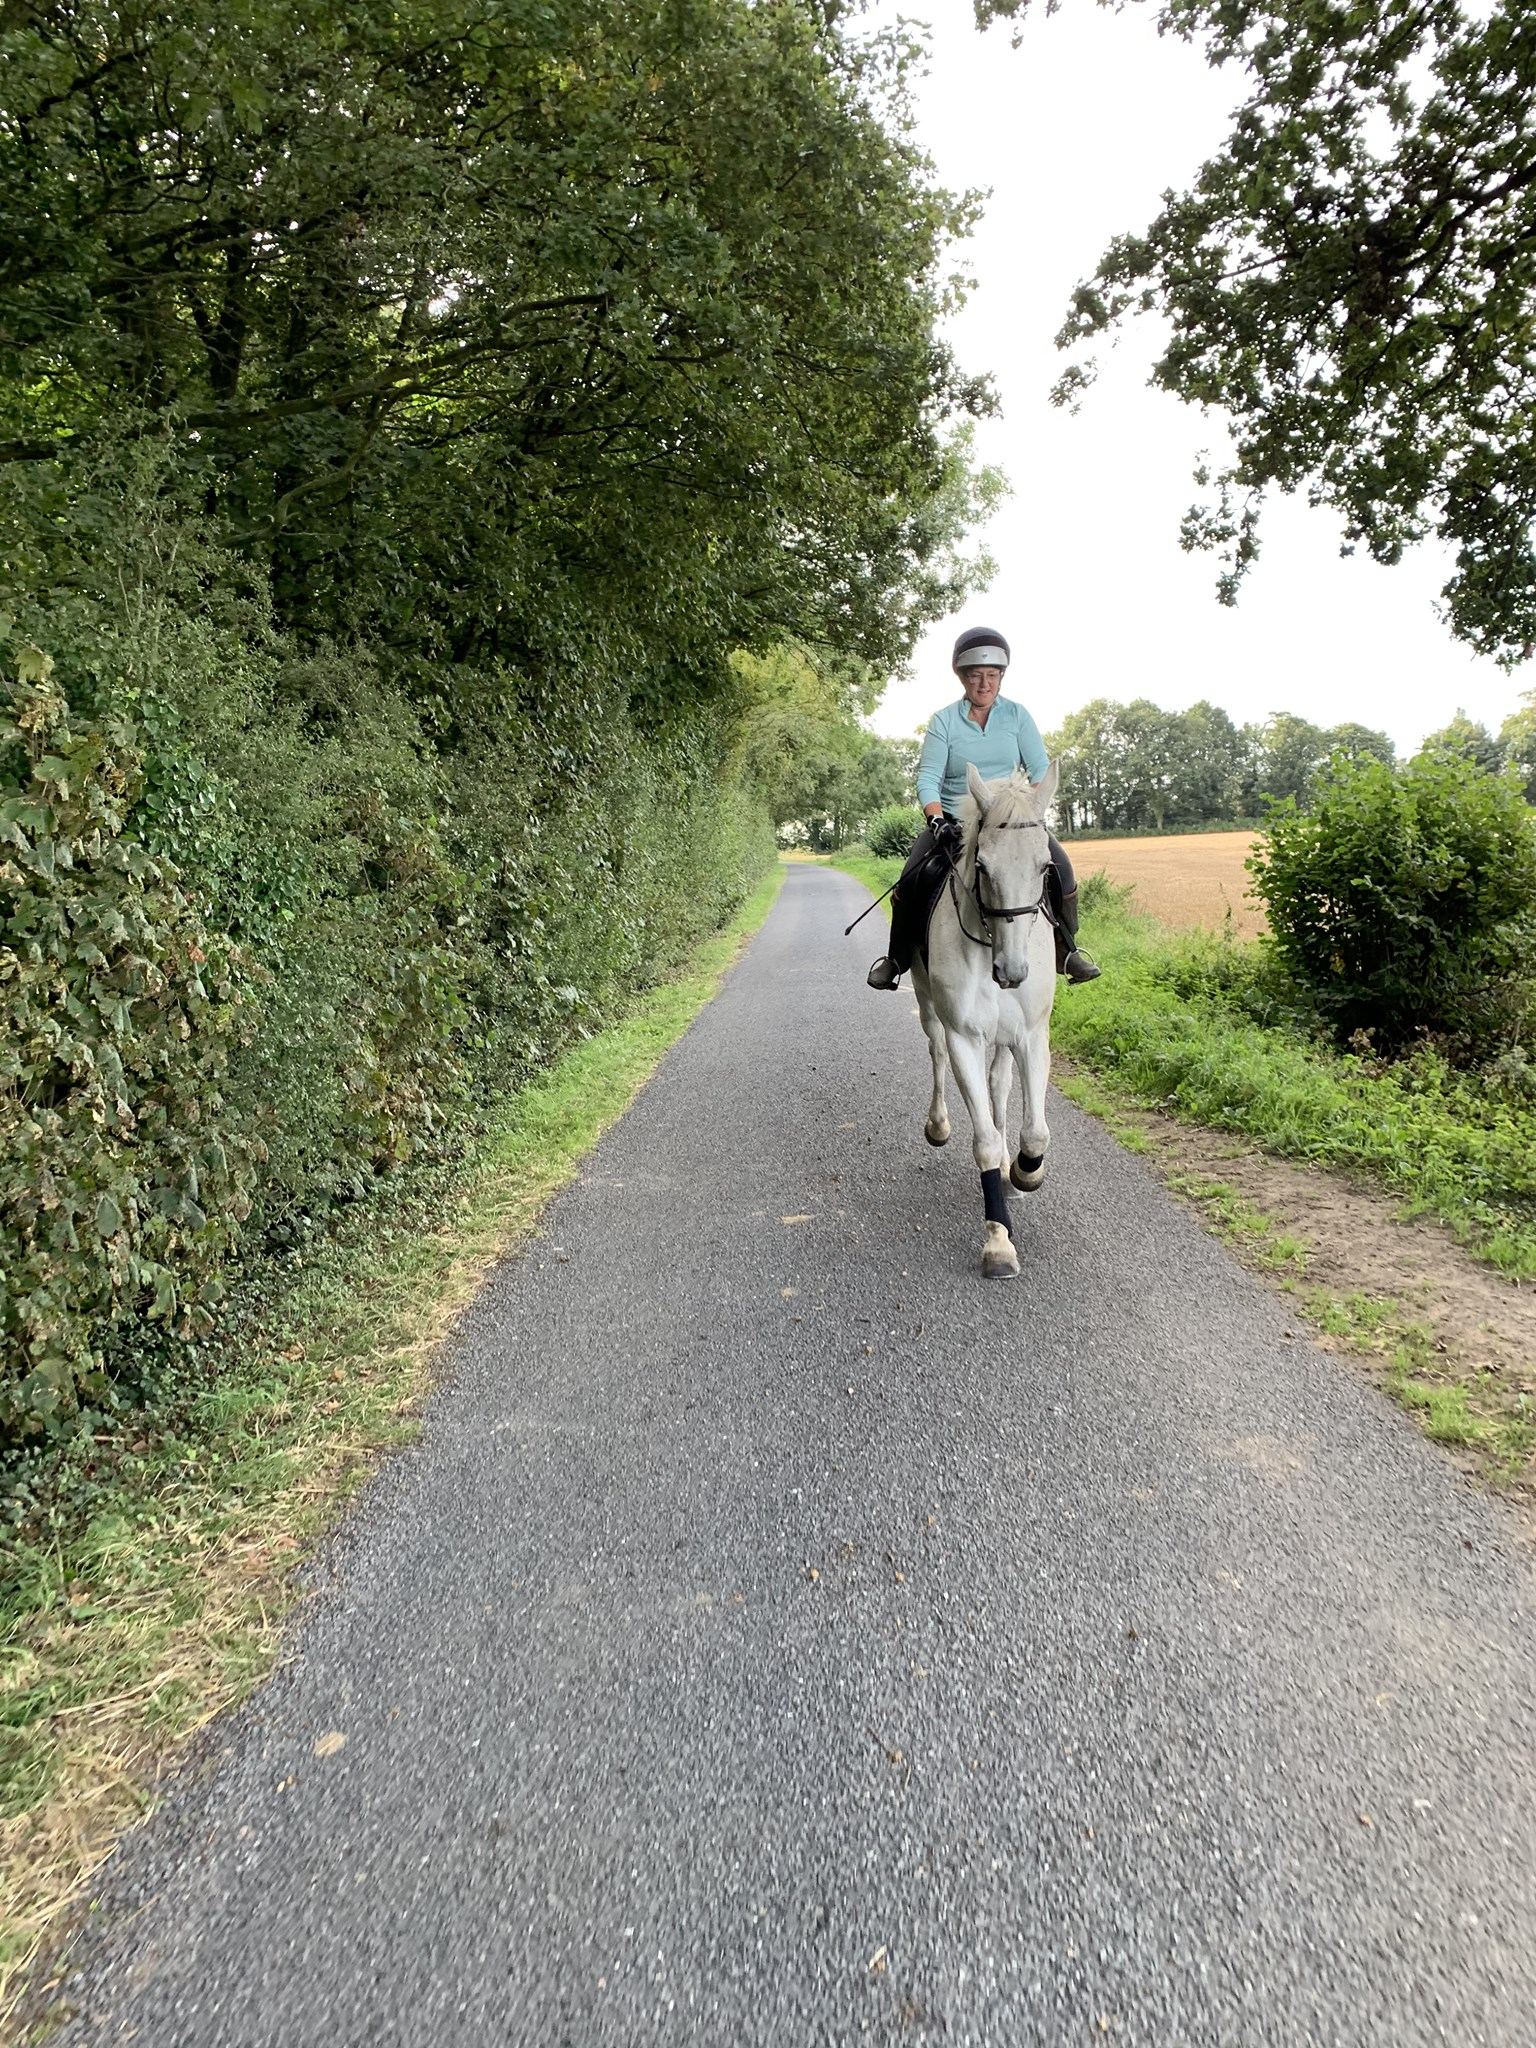 New Highway Code Rules – Protection for Horse Riders